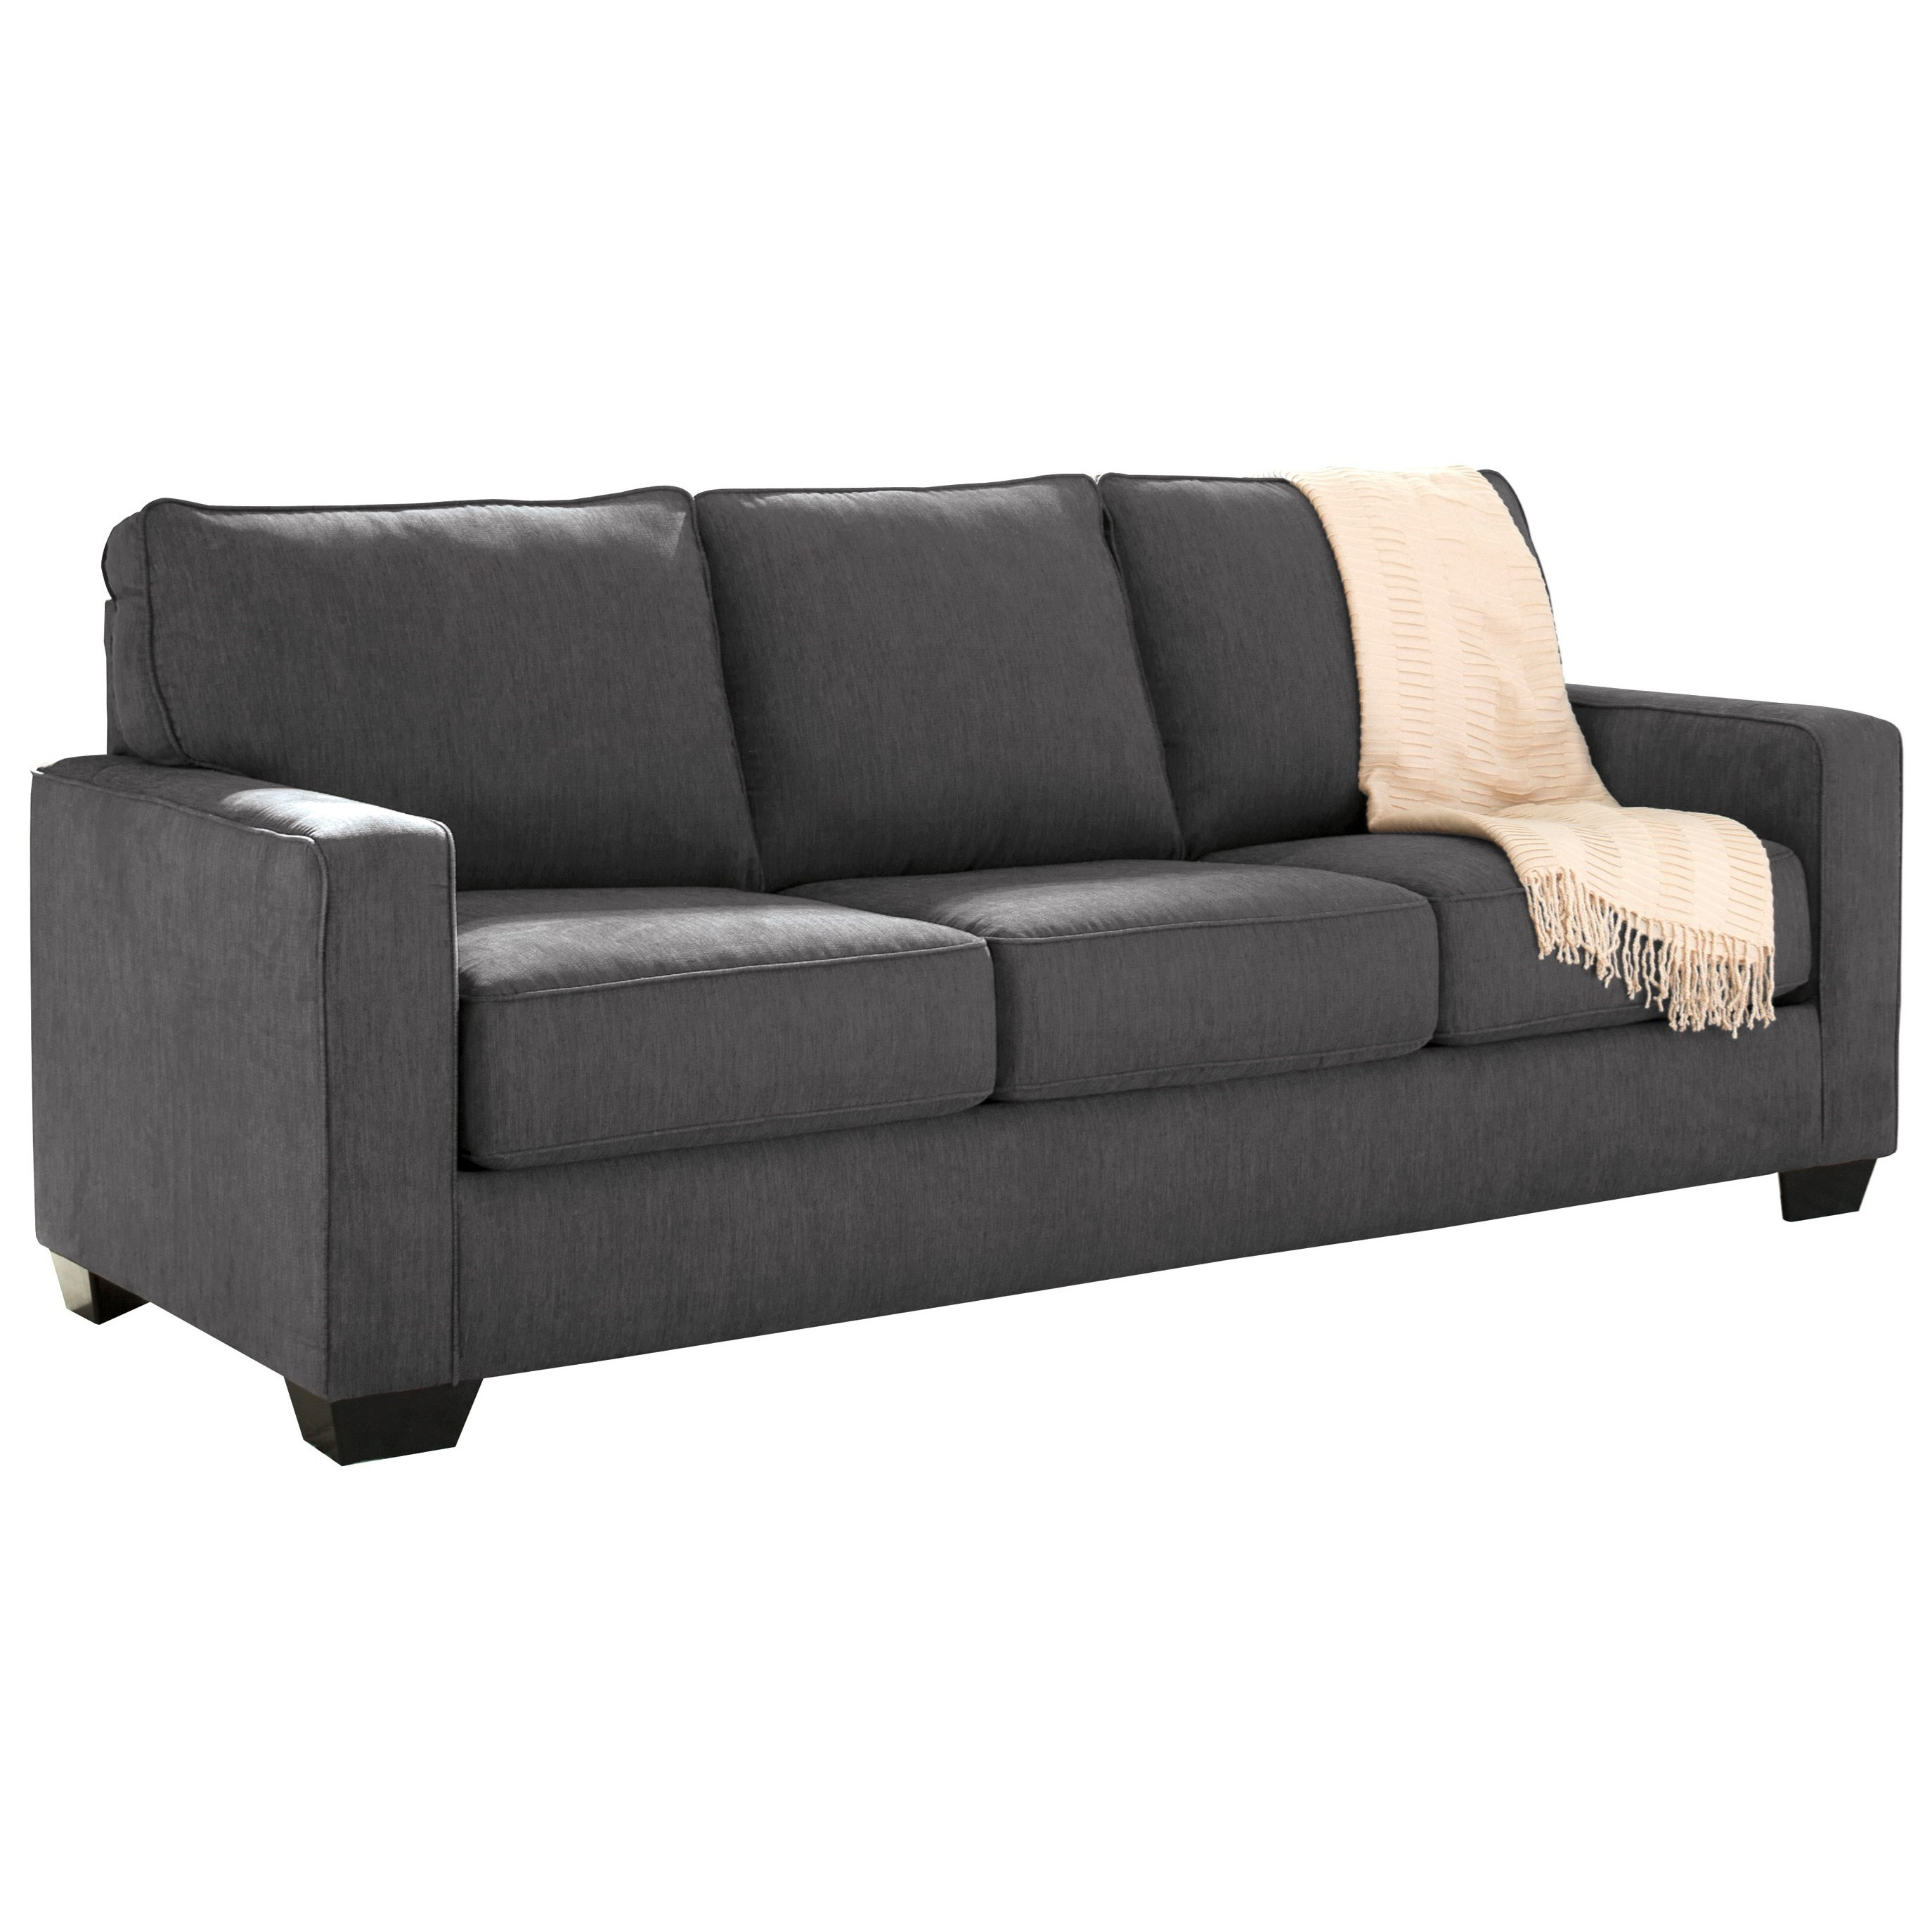 Queen Sofa Sleeper With Memory Foam Mattress By Signature